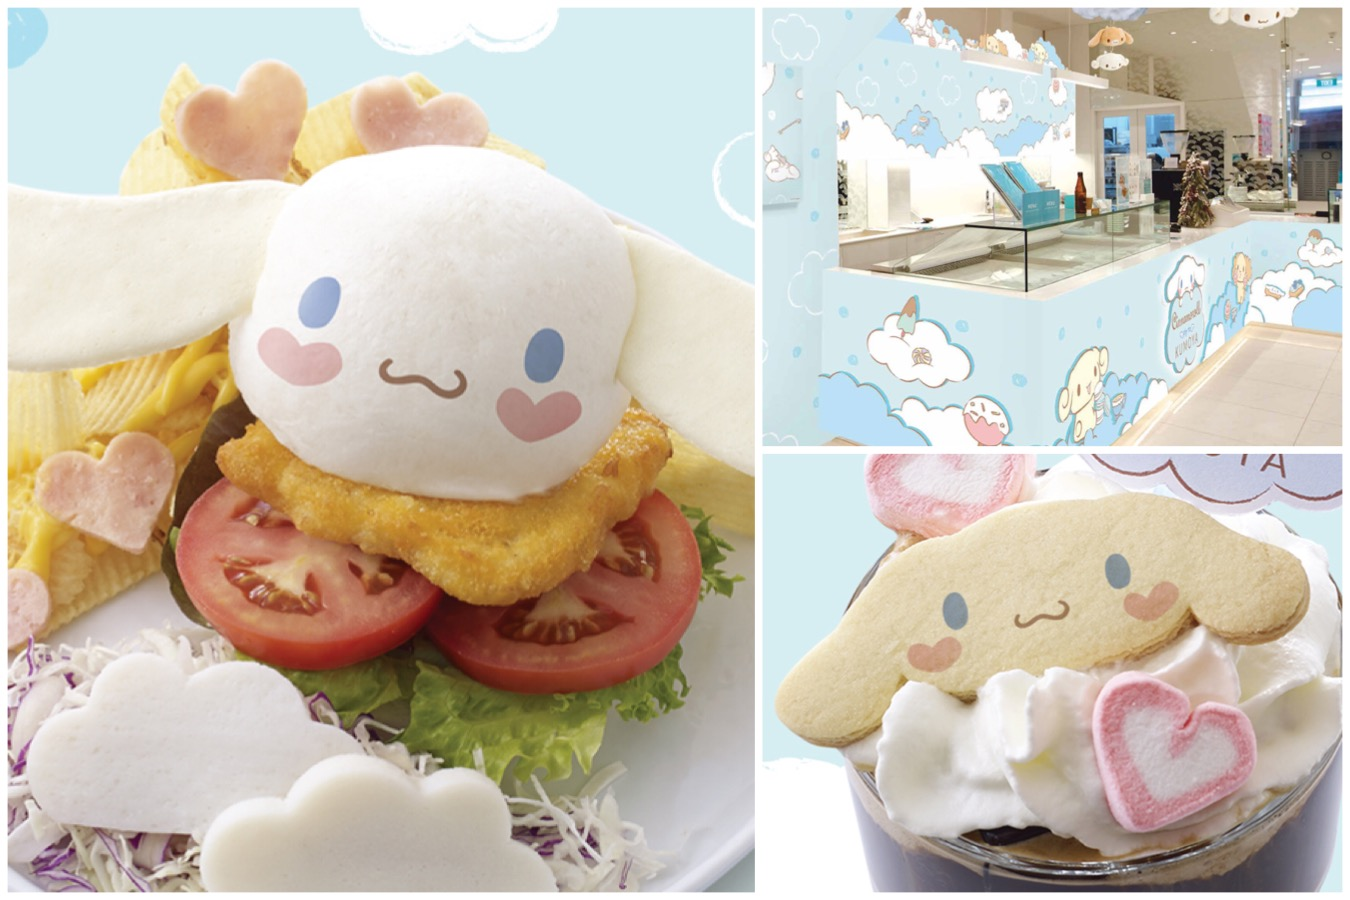 Kumoya – Cinnamoroll Café With Cute Burgers, Desserts And Eclairs, Halal Certified